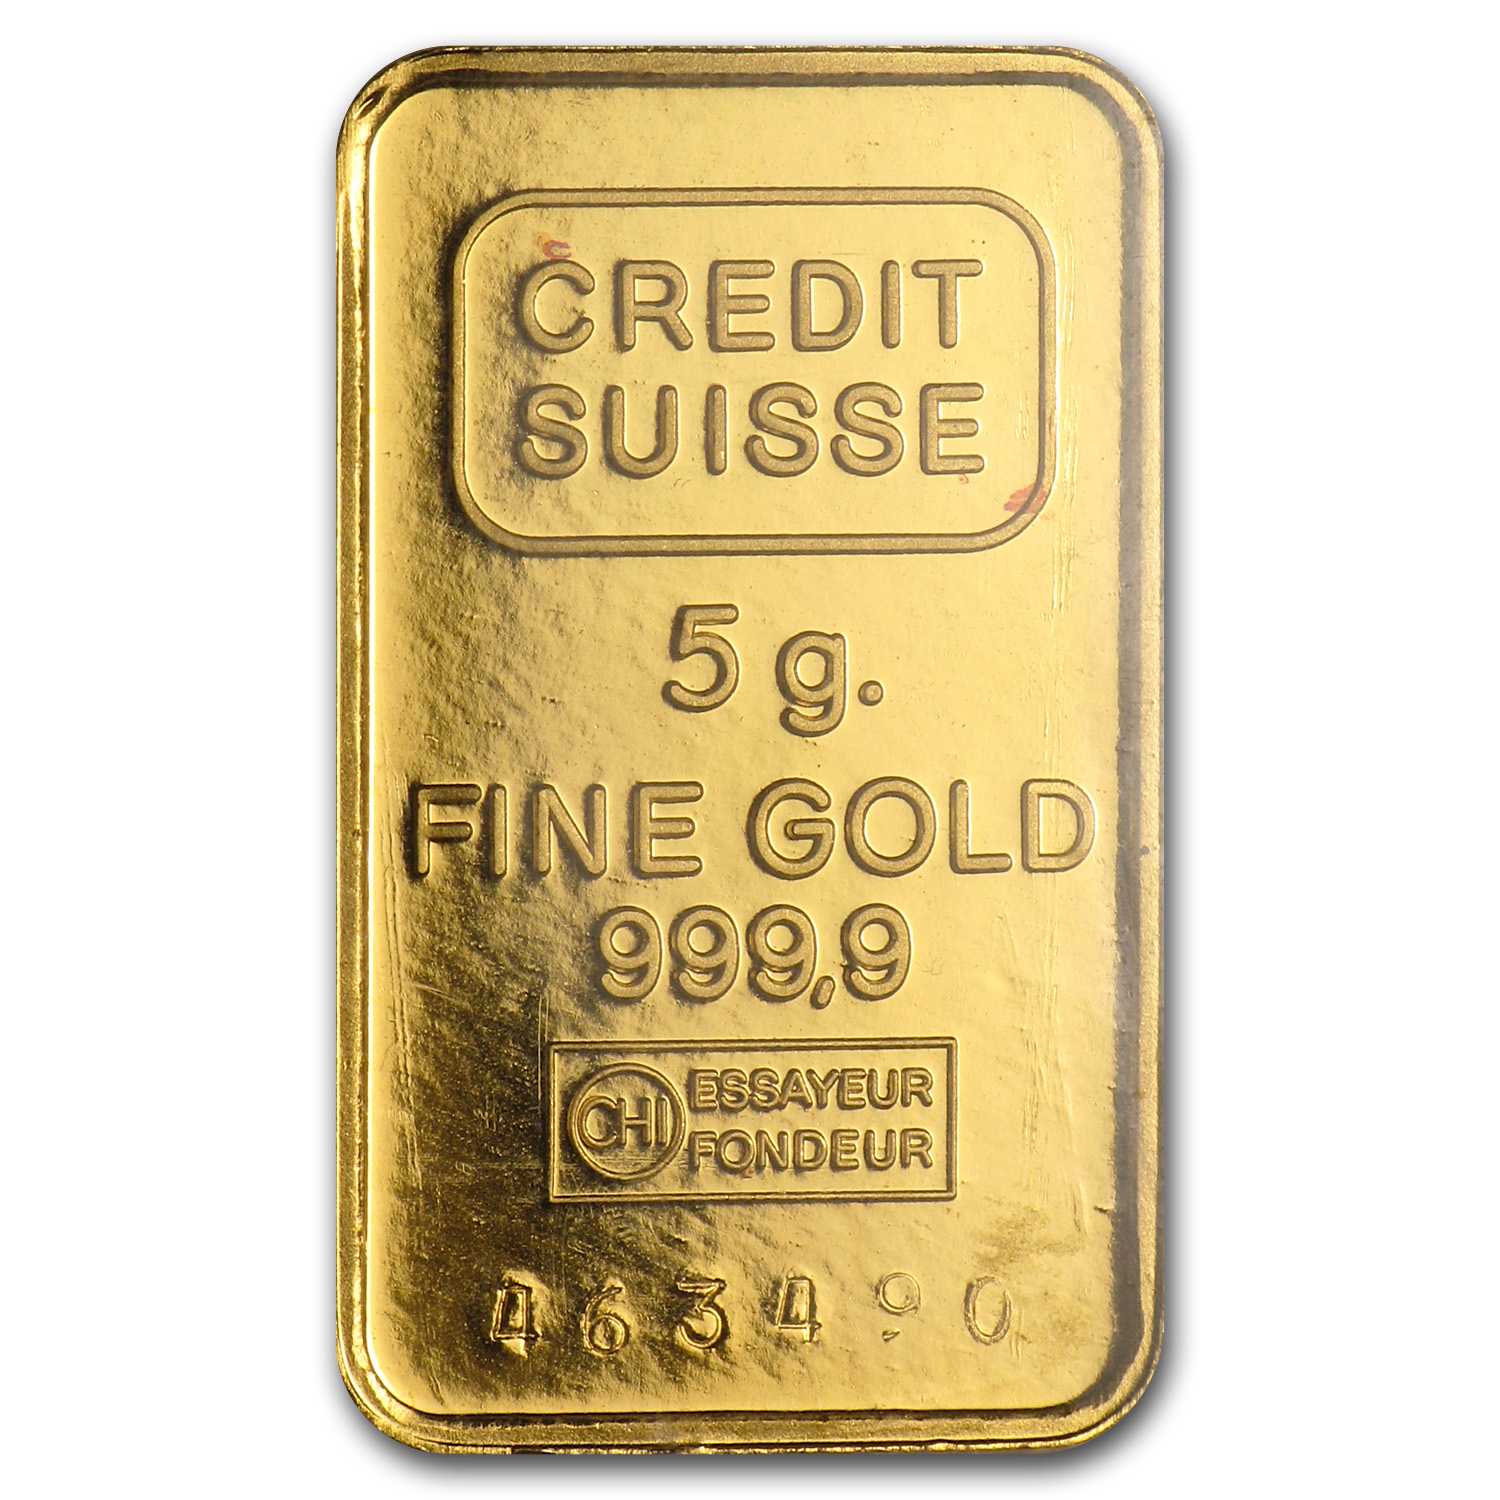 5 gram Gold Bar - Credit Suisse Vintage Design